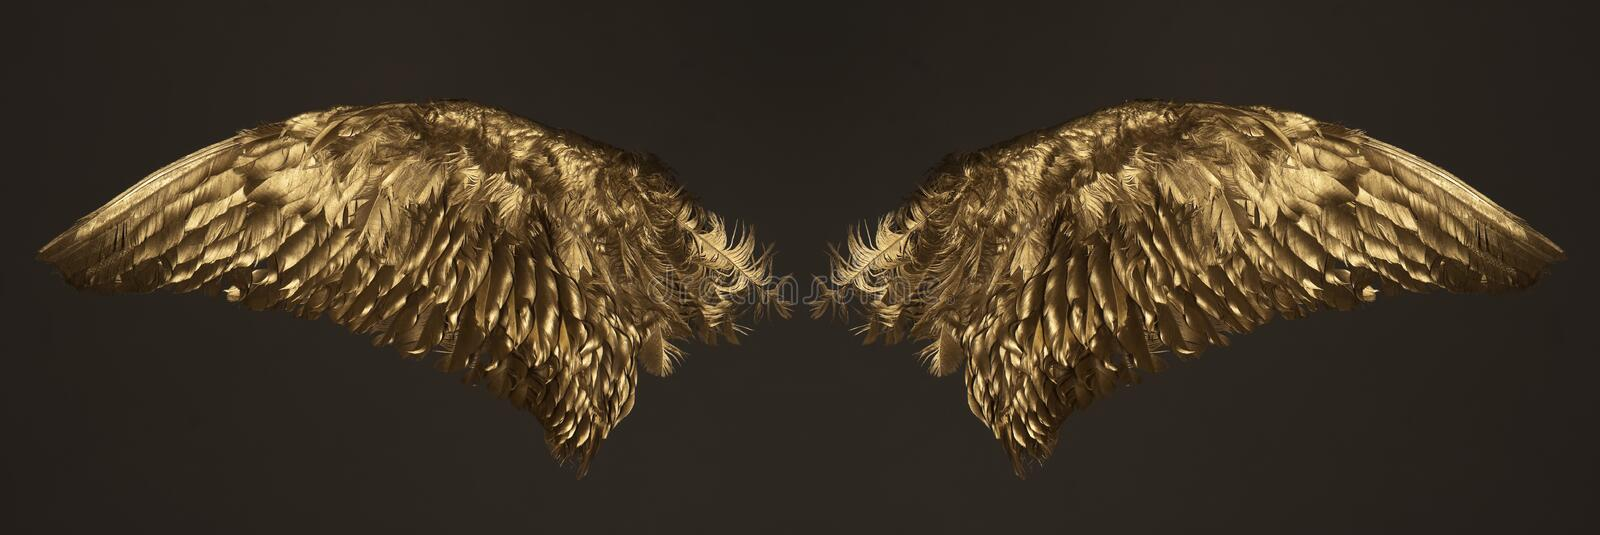 Ailes d'or